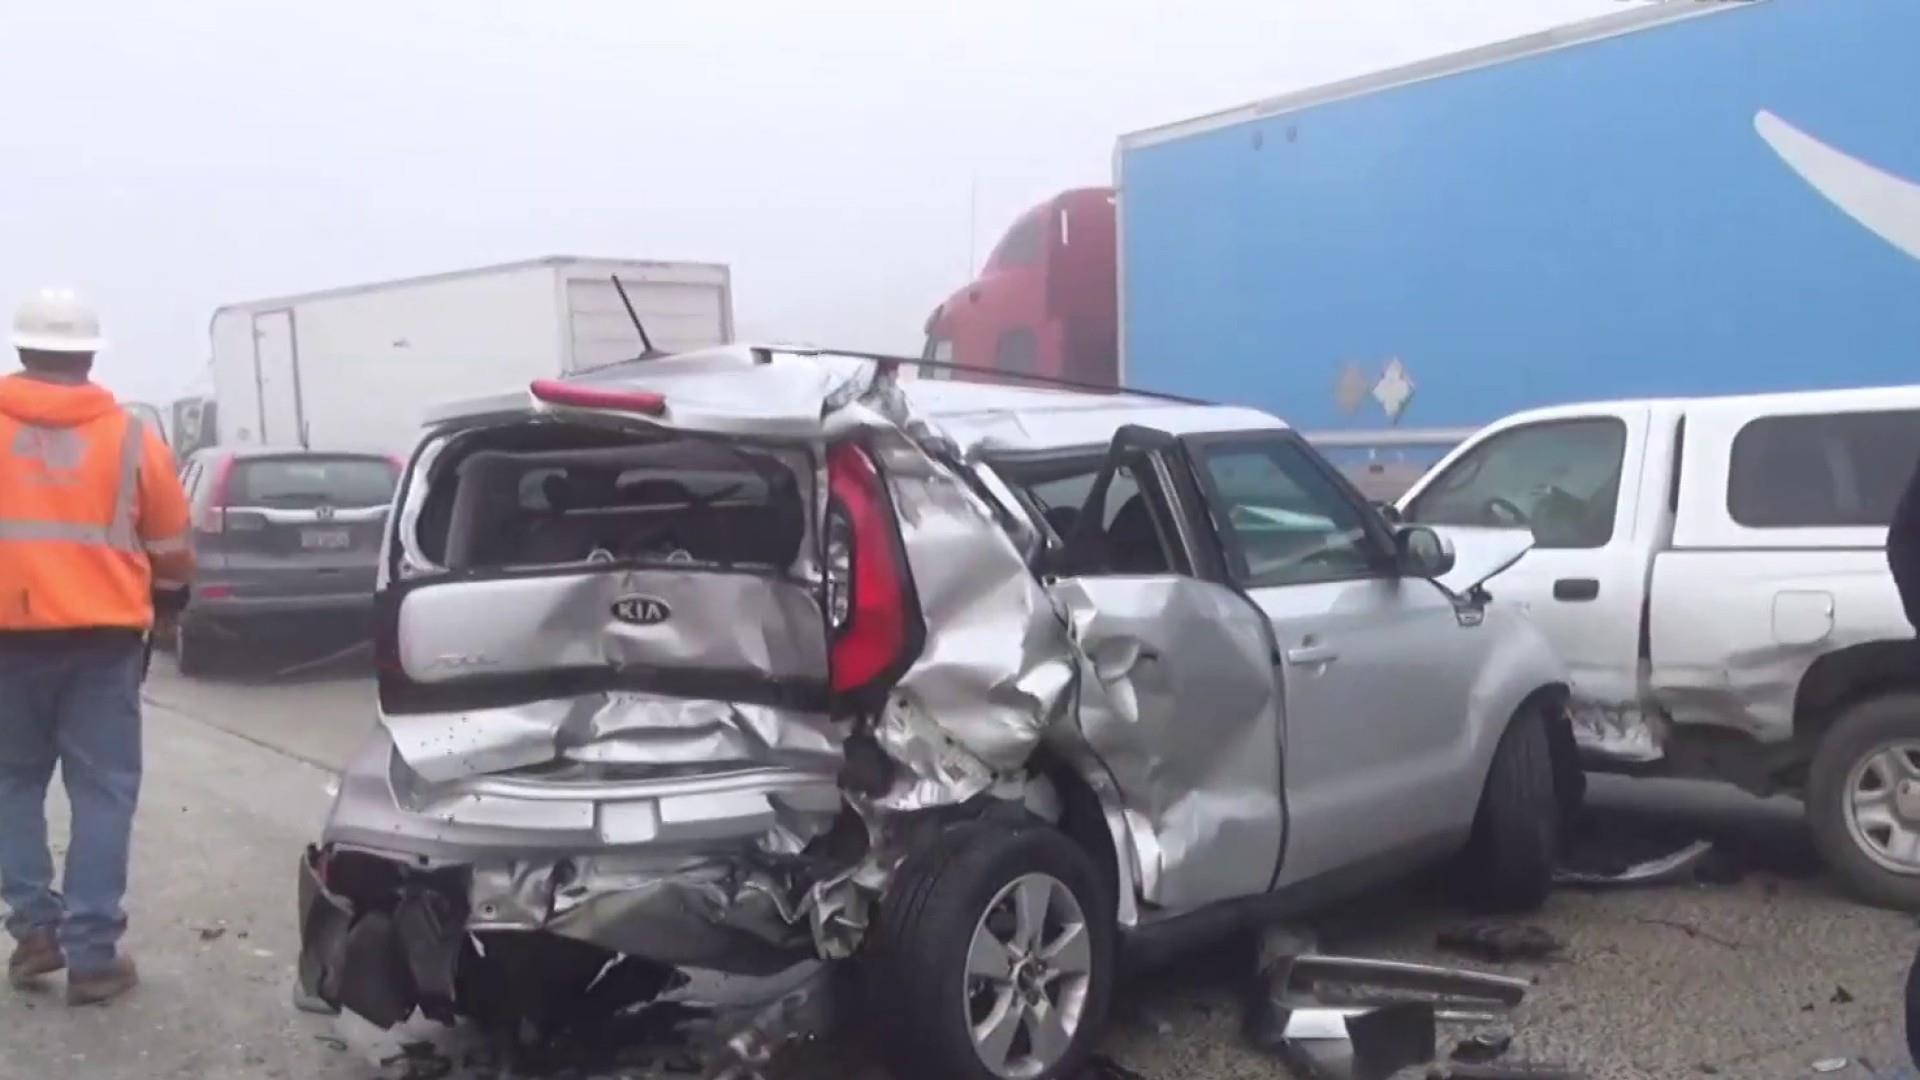 One dead after massive car pileups in California